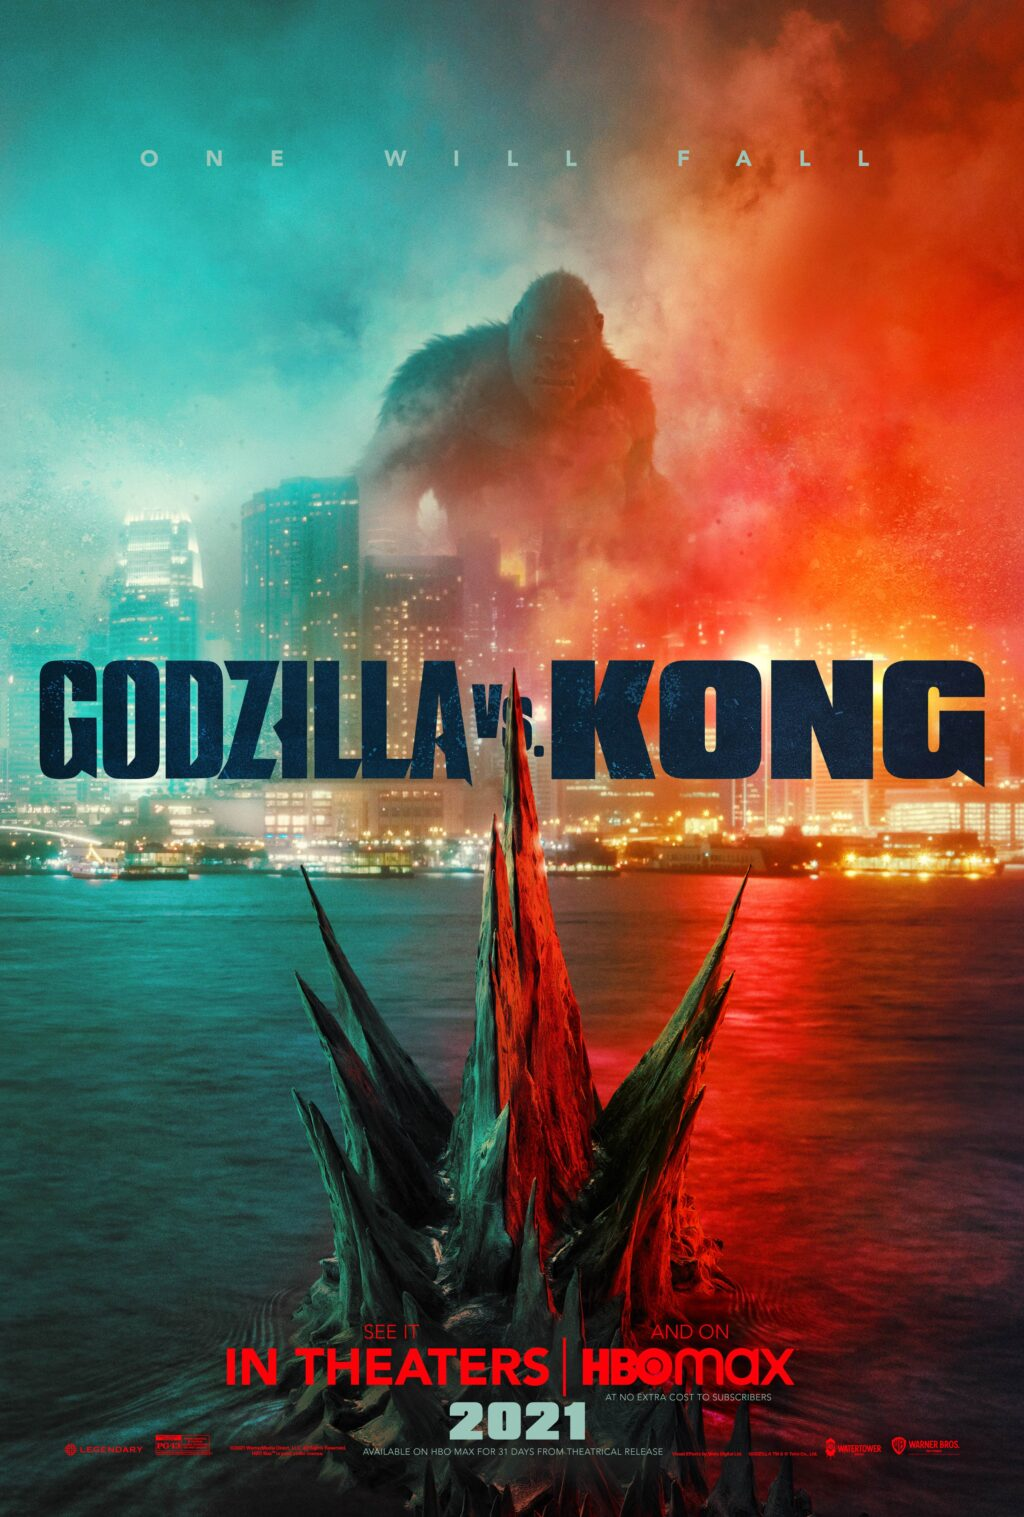 Godzilla vs Kong Poster 1024x1517 - Is This the First REAL Image of Mechagodzilla in GODZILLA VS KONG?